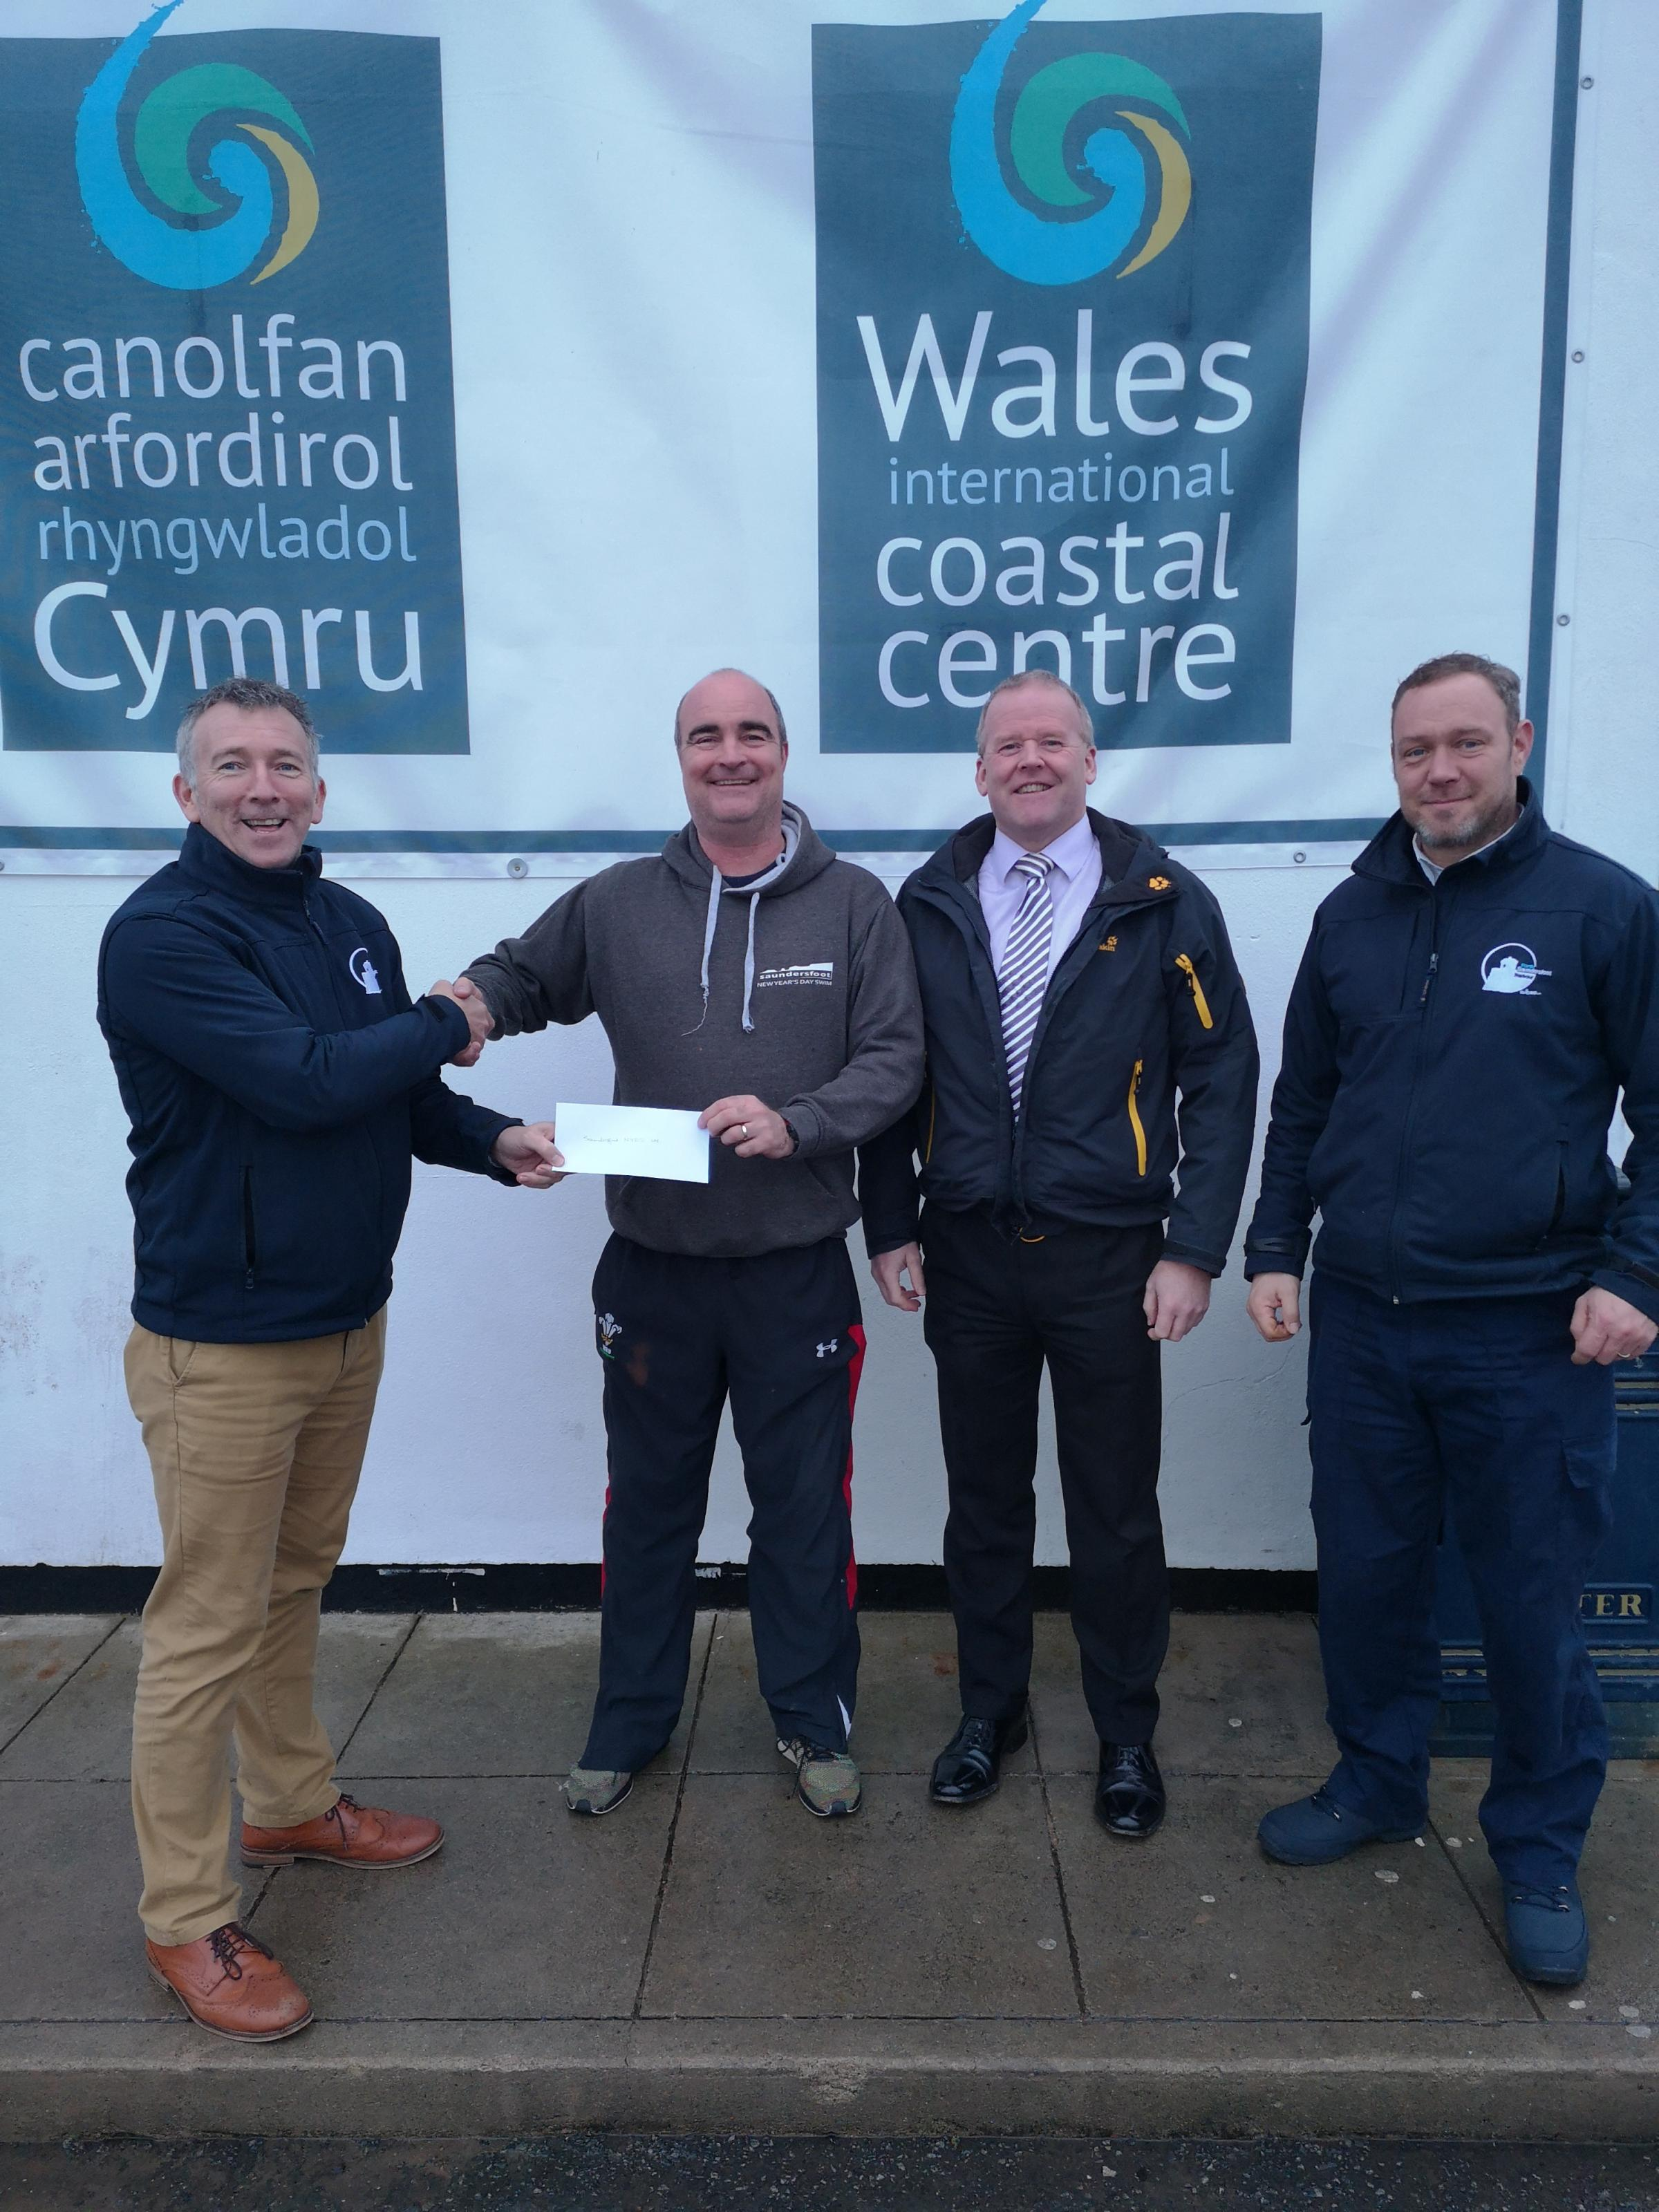 Pictured at the cheque presentation are: Bradley Davies, Saundersfoot Harbour commercial manager; Chris Williams, New Year's Day Swim Committee; Antony Matic, New Year's Day Swim Committee; and David Richards, Saundersfoot Harbourmaster.